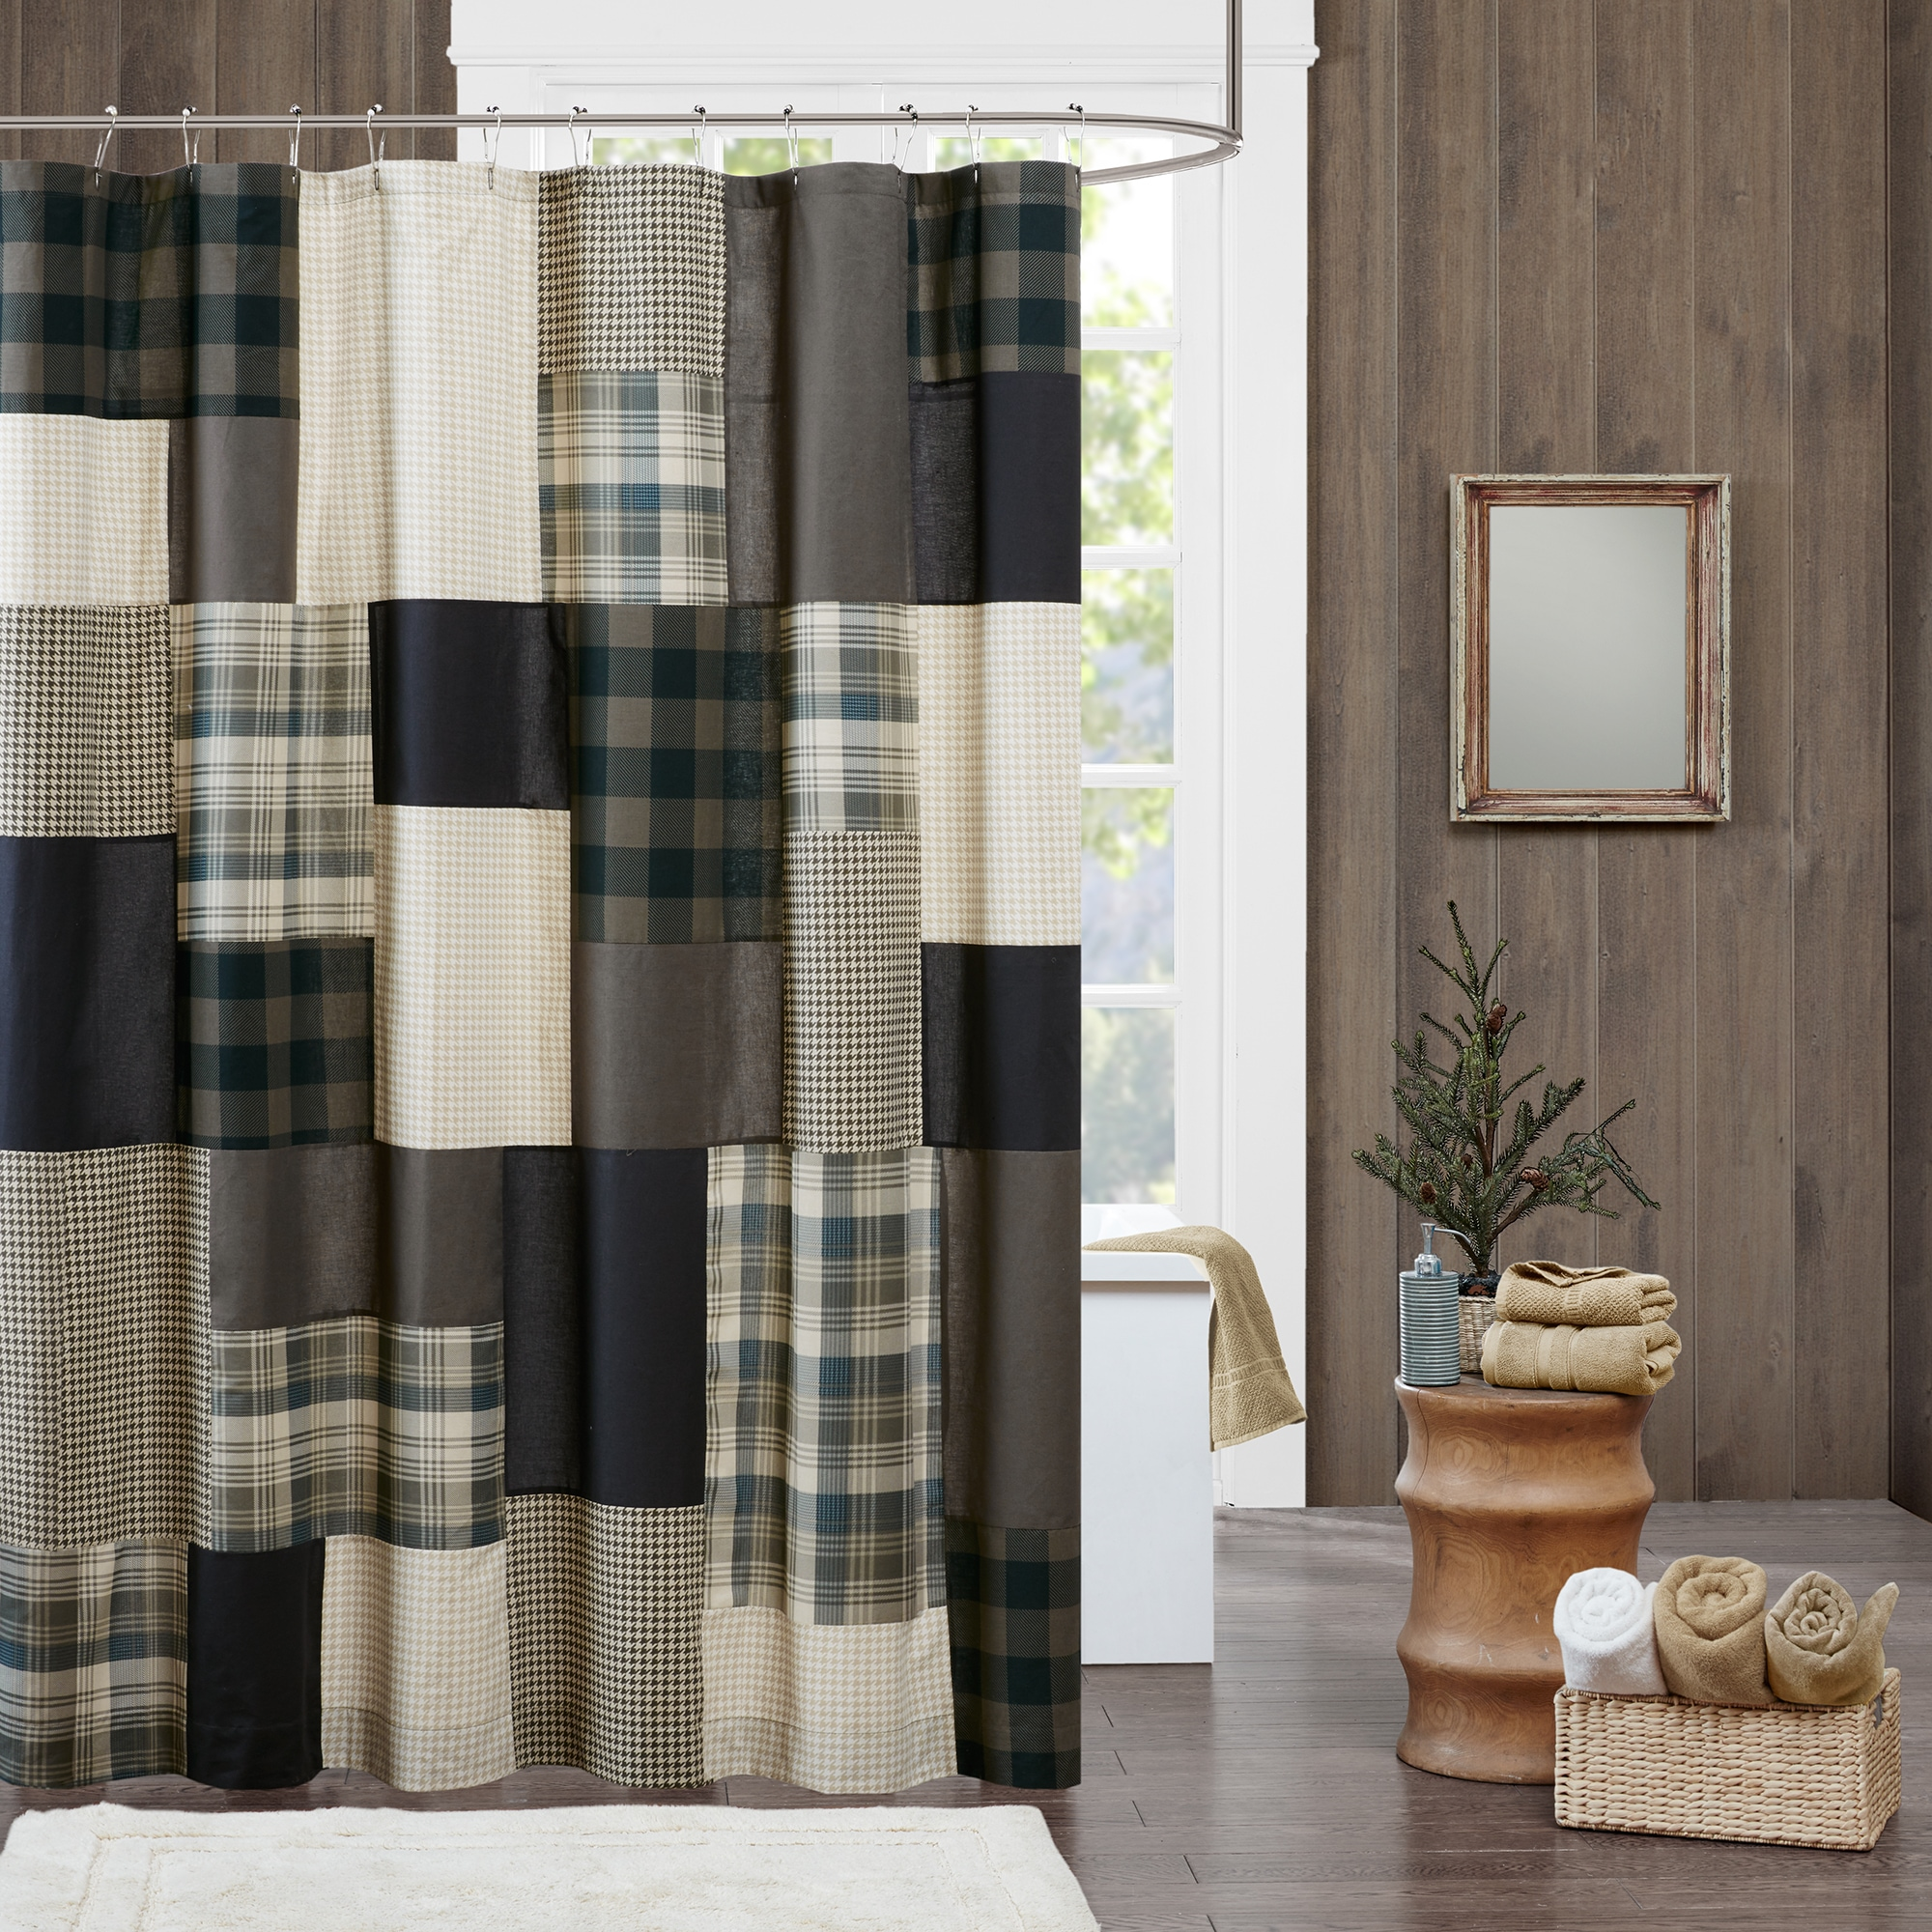 Plaid Shower Curtains Find Great Shower Curtains